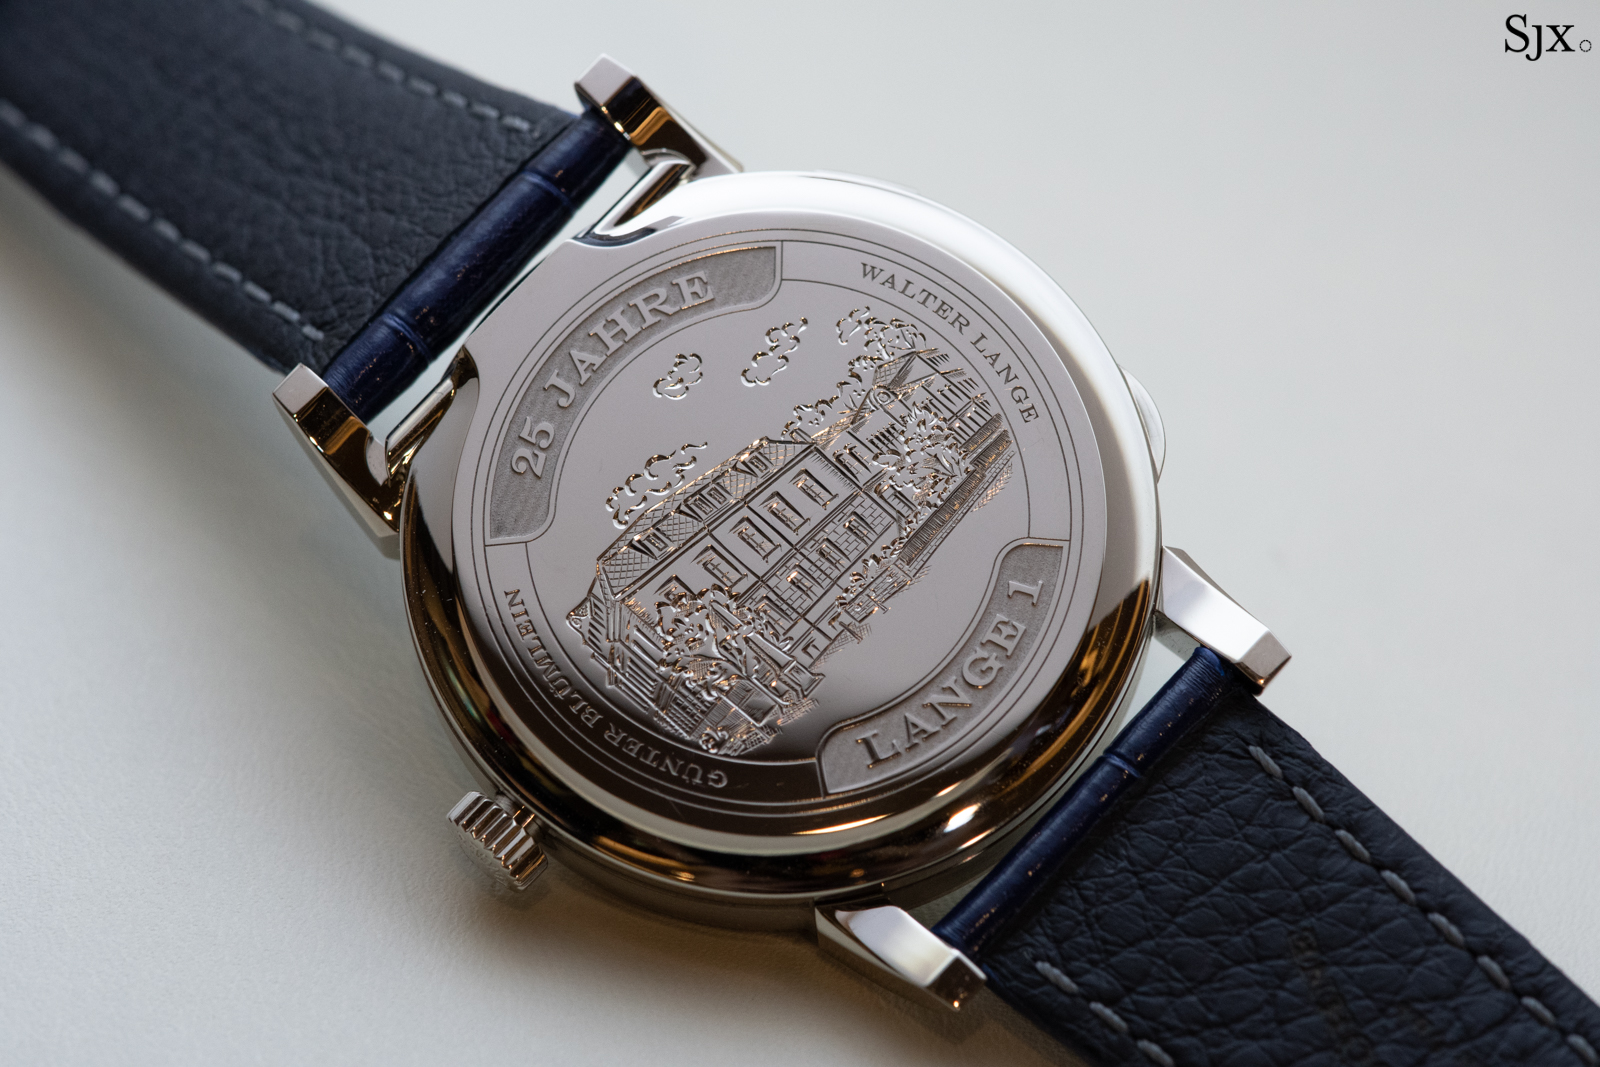 Lange 1 25th Anniversary case back